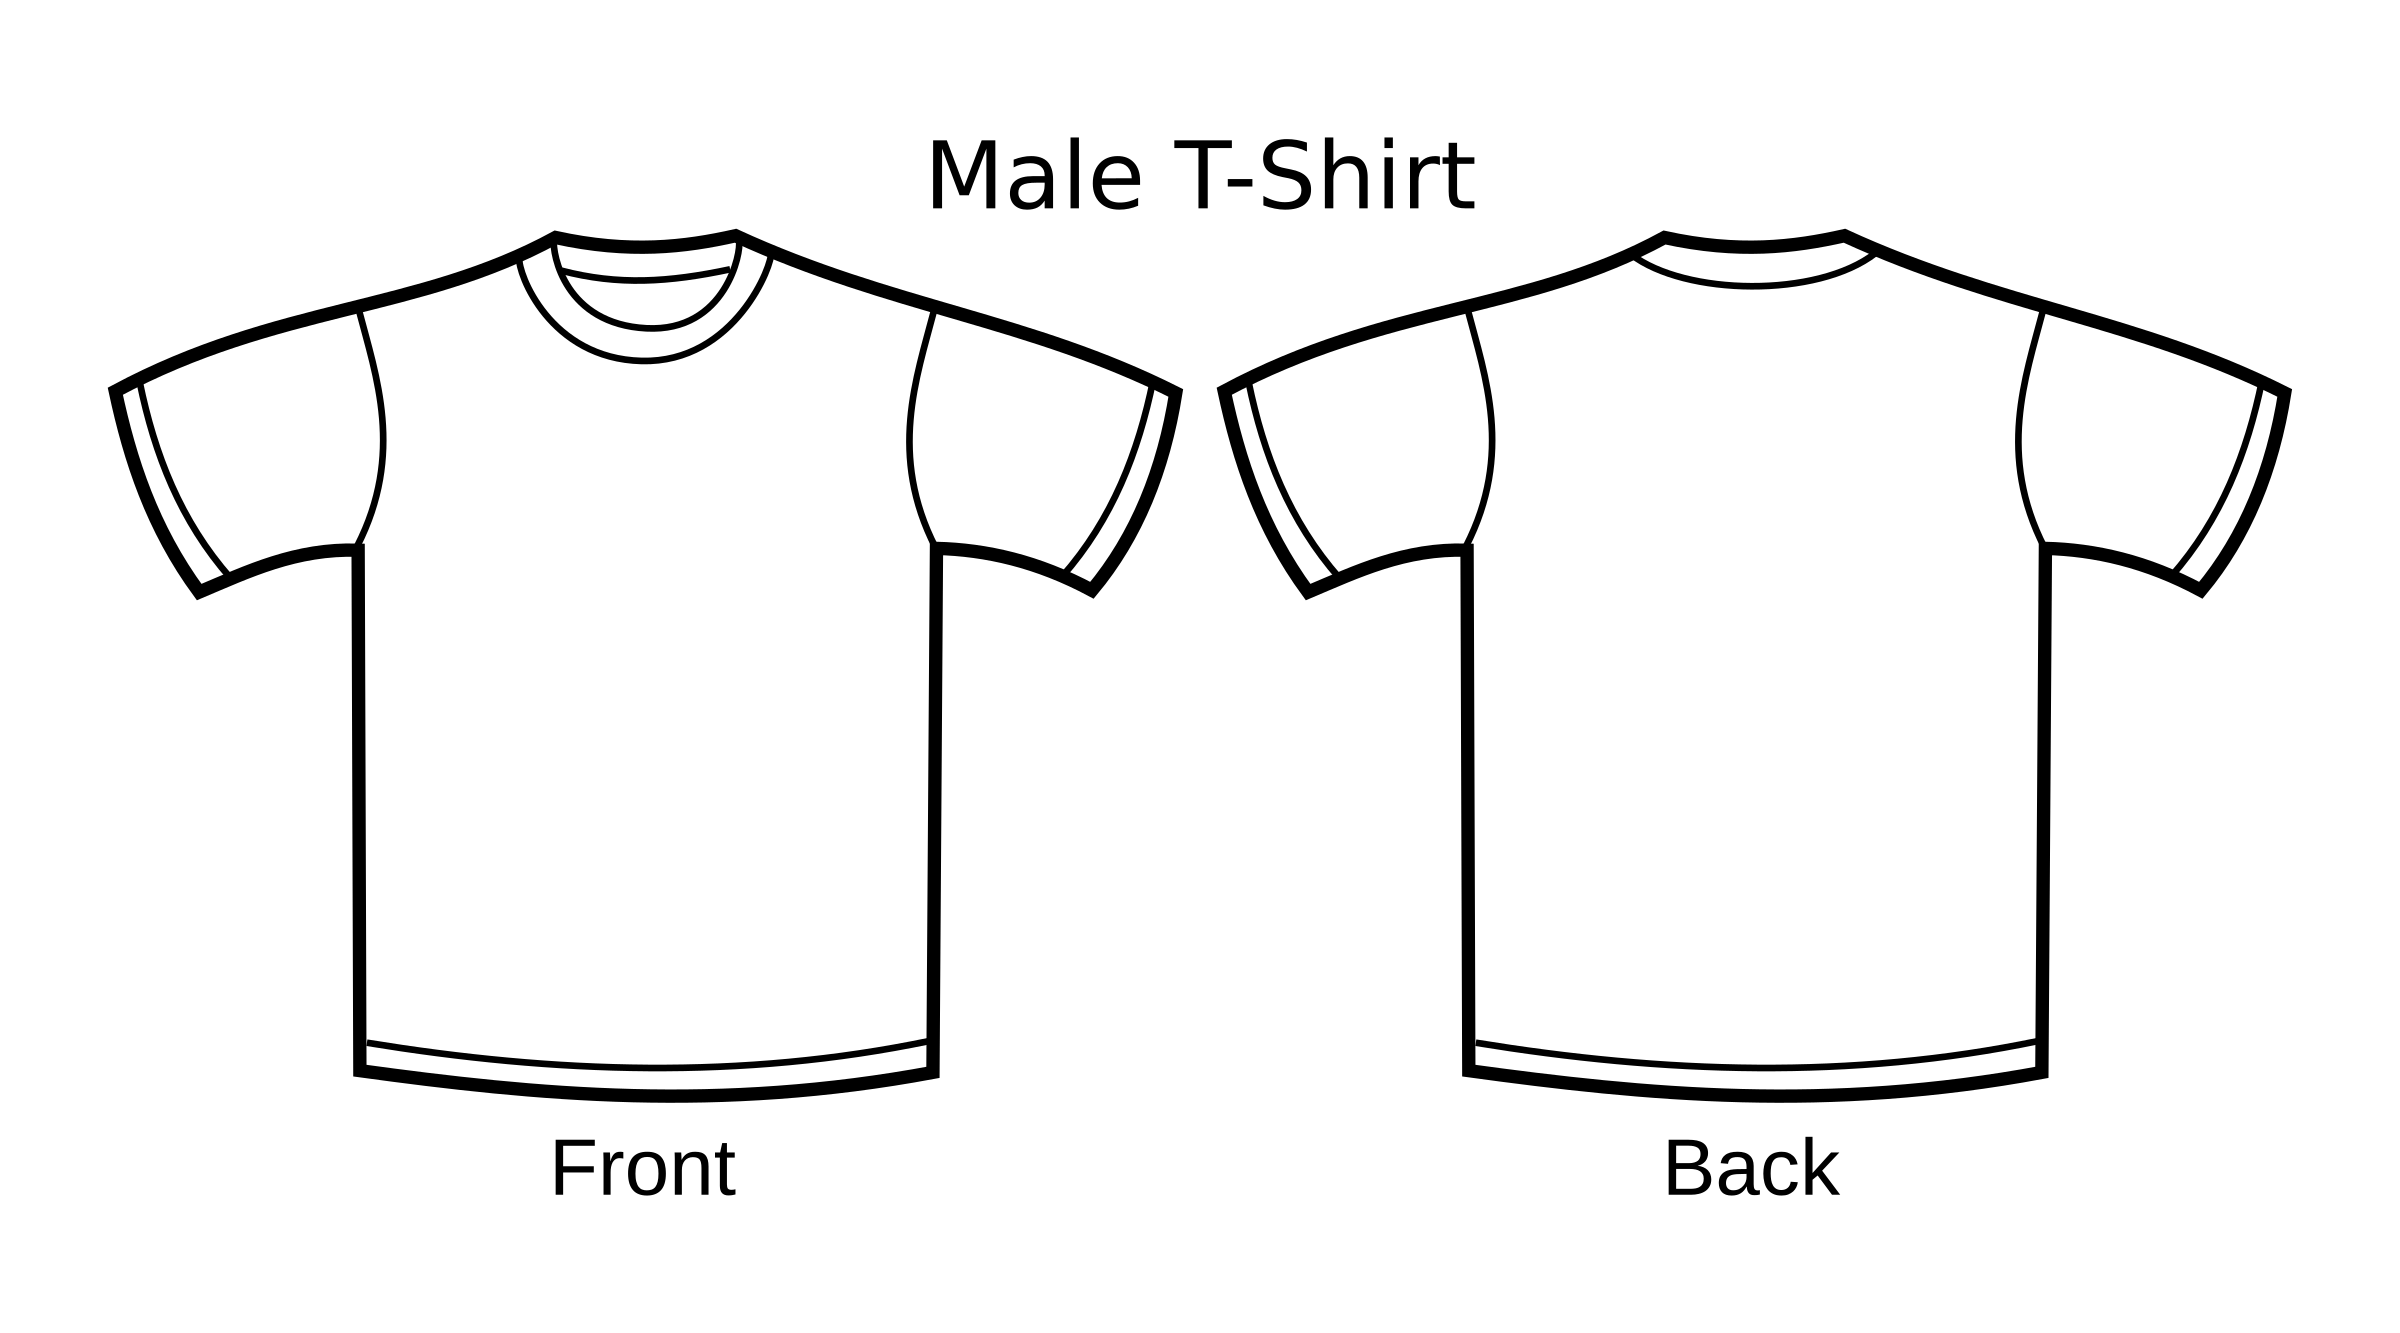 Tshirt png transparent tshirt png images pluspng for How to copyright at shirt design